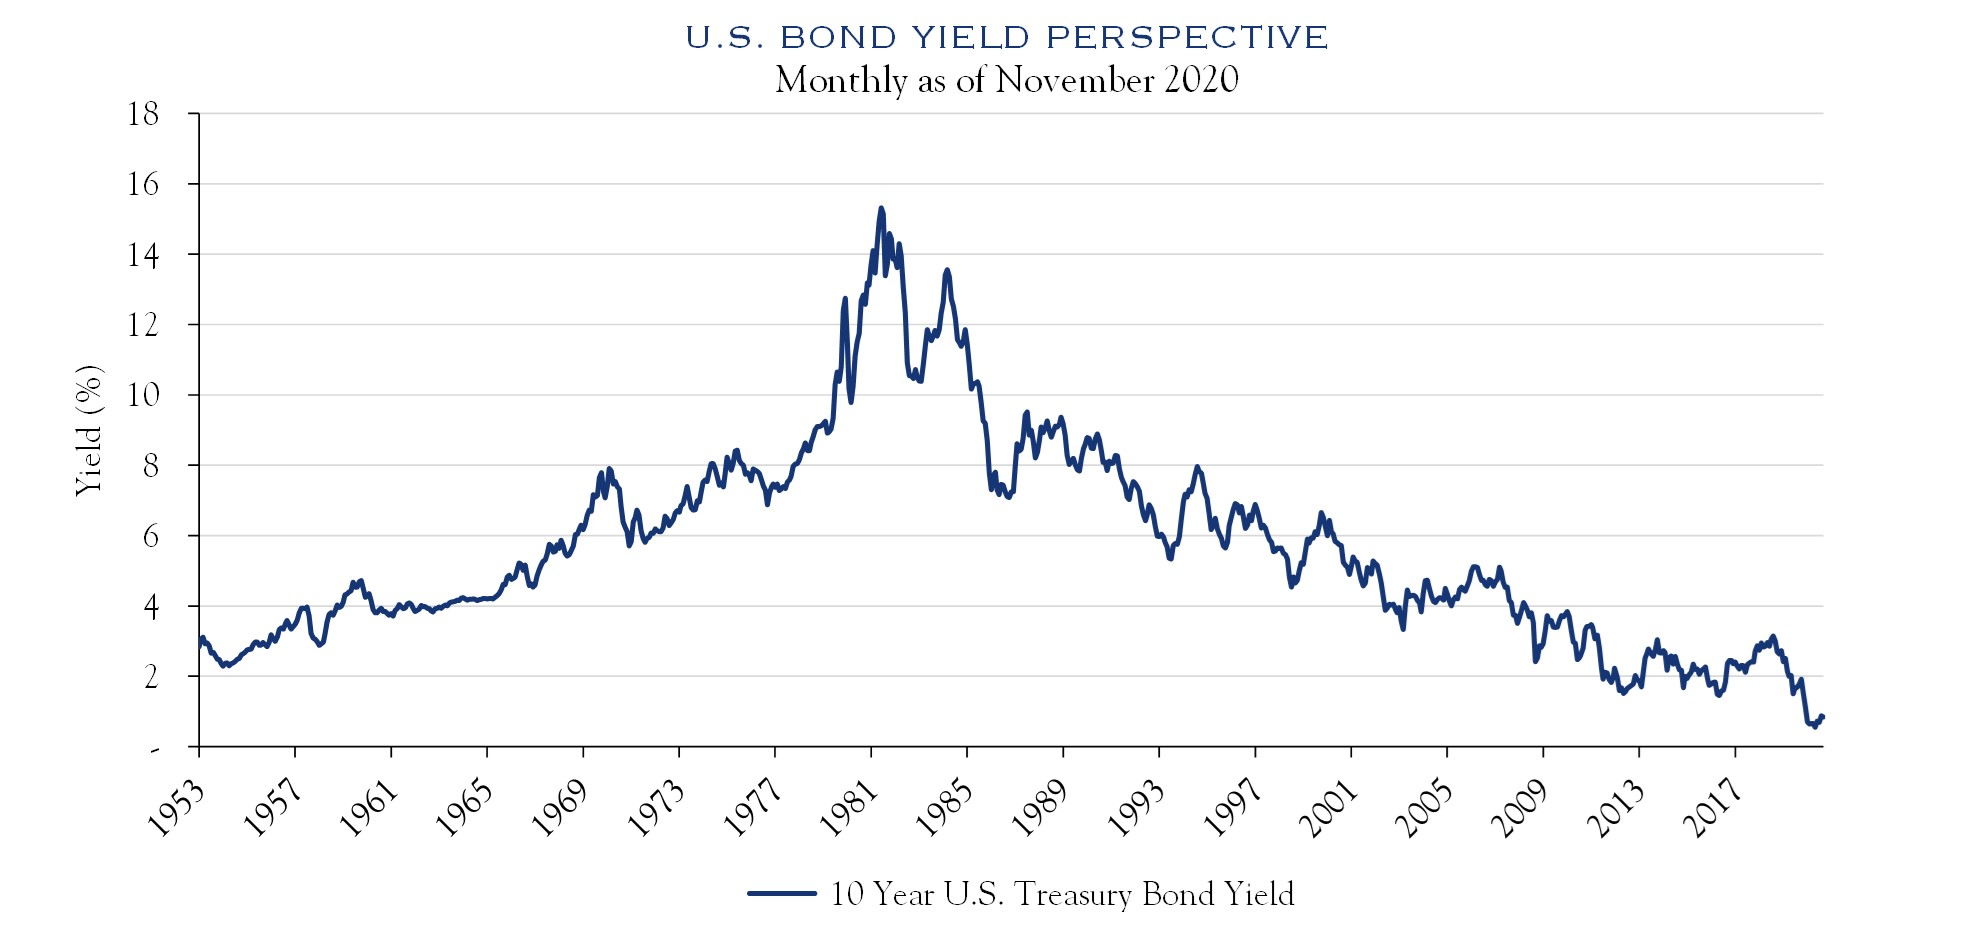 U.S. Bond Yield Perspective Monthly as of November 2020